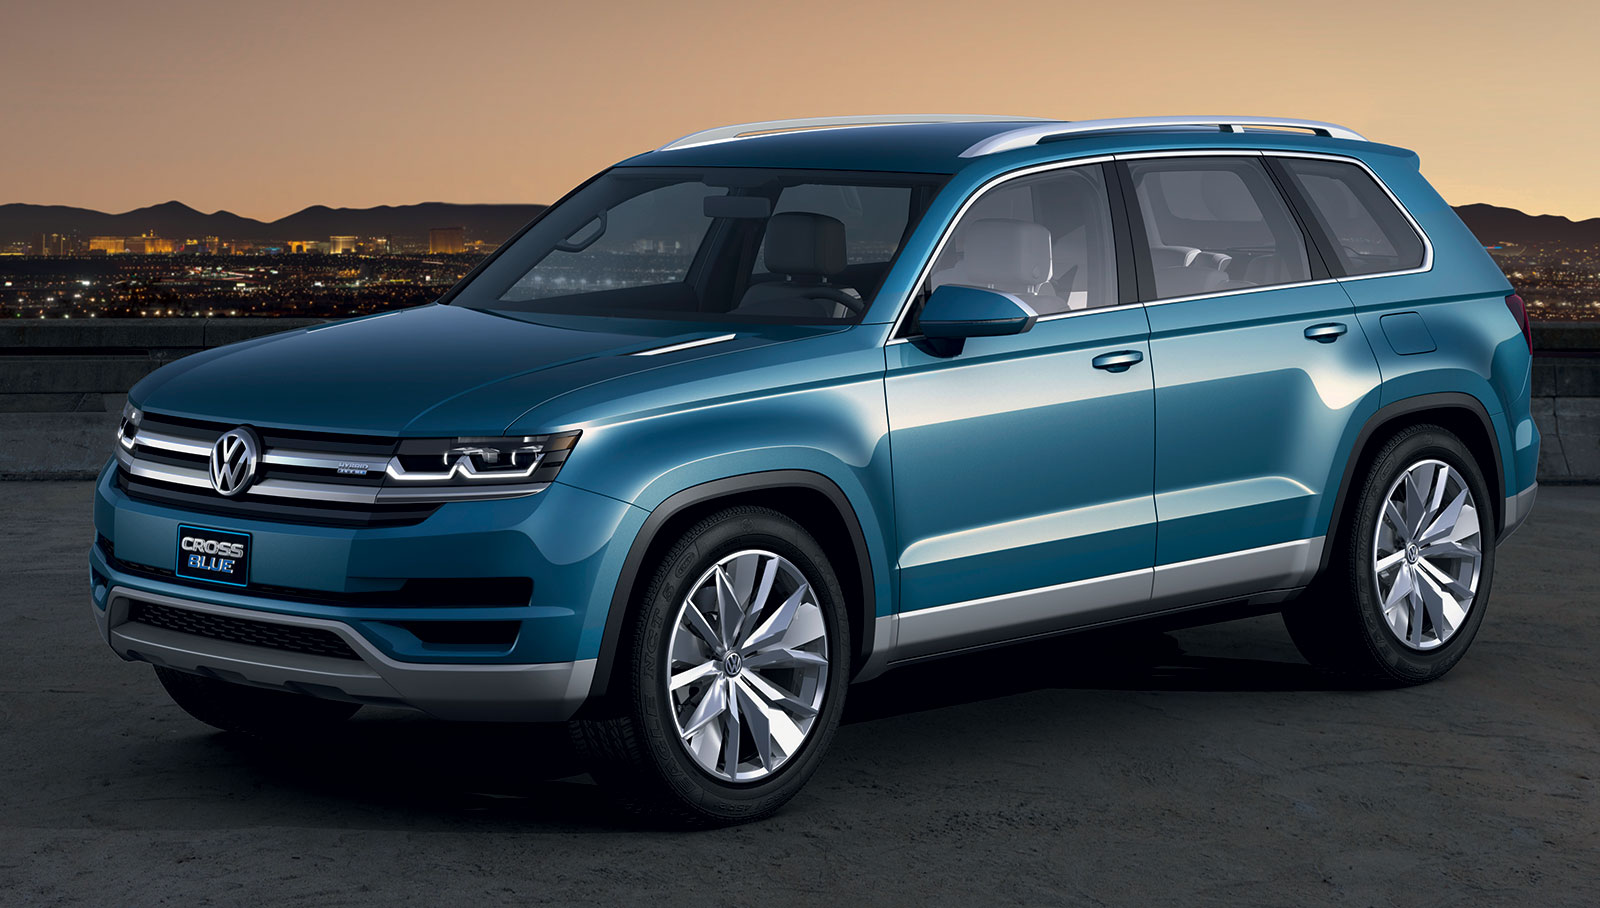 Volkswagen to build 7-seater CrossBlue SUV in USA